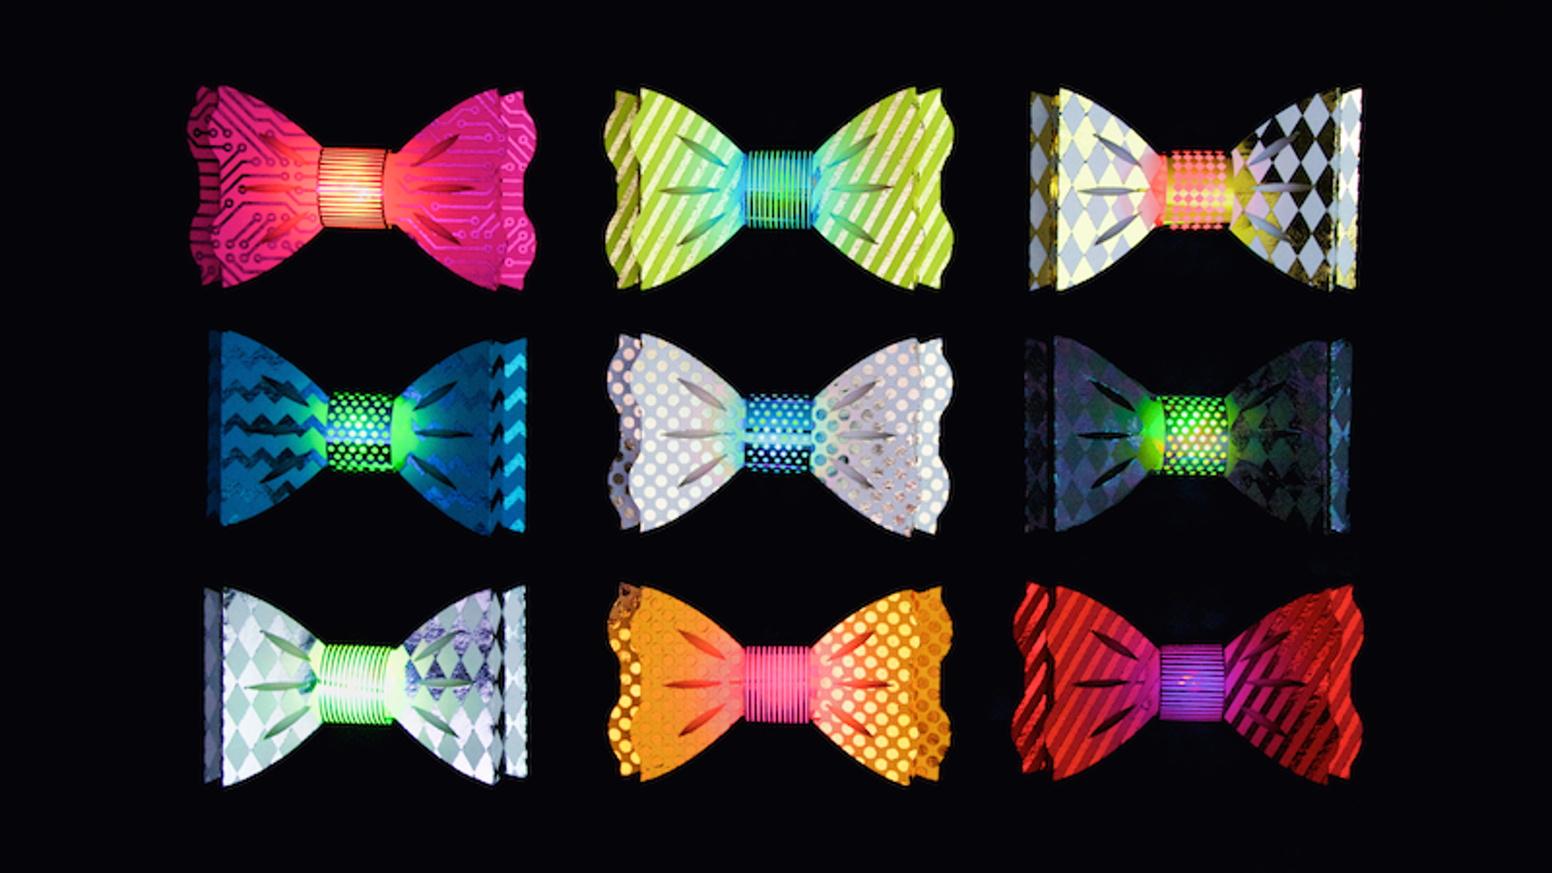 138a425e1c9d A light-up blinky bow tie kit that makes crafting w  electronics super cool